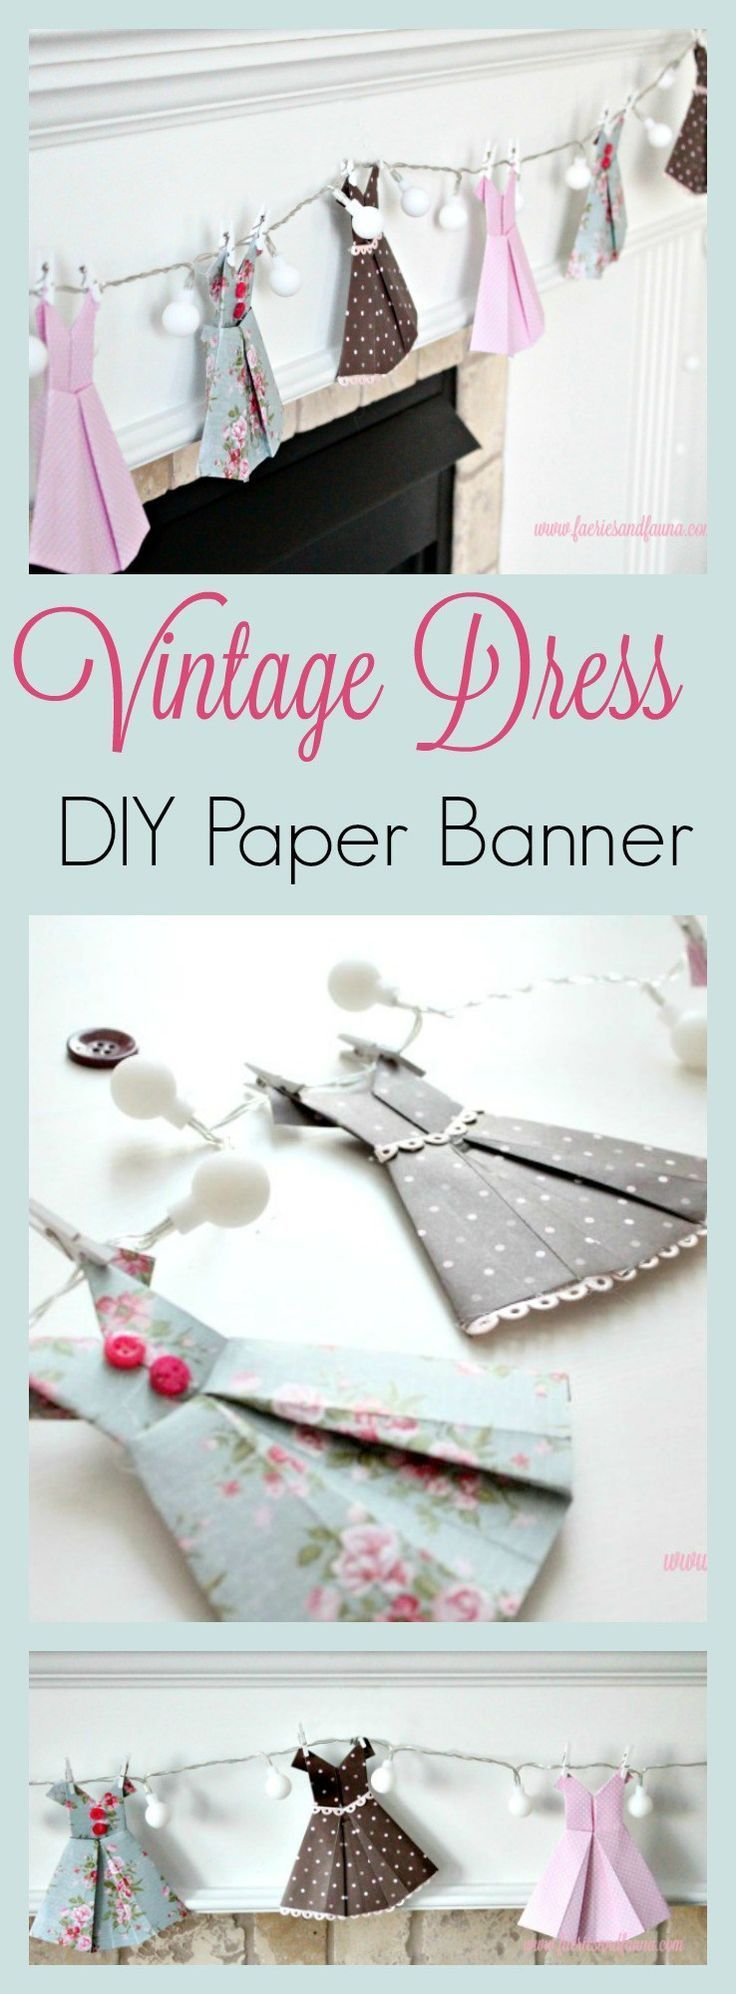 Ideas : origami dress, DIY paper banner, paper dress banner, paper dress design, spring banner, DIY spring decor, paper home decor, paper dress, banner